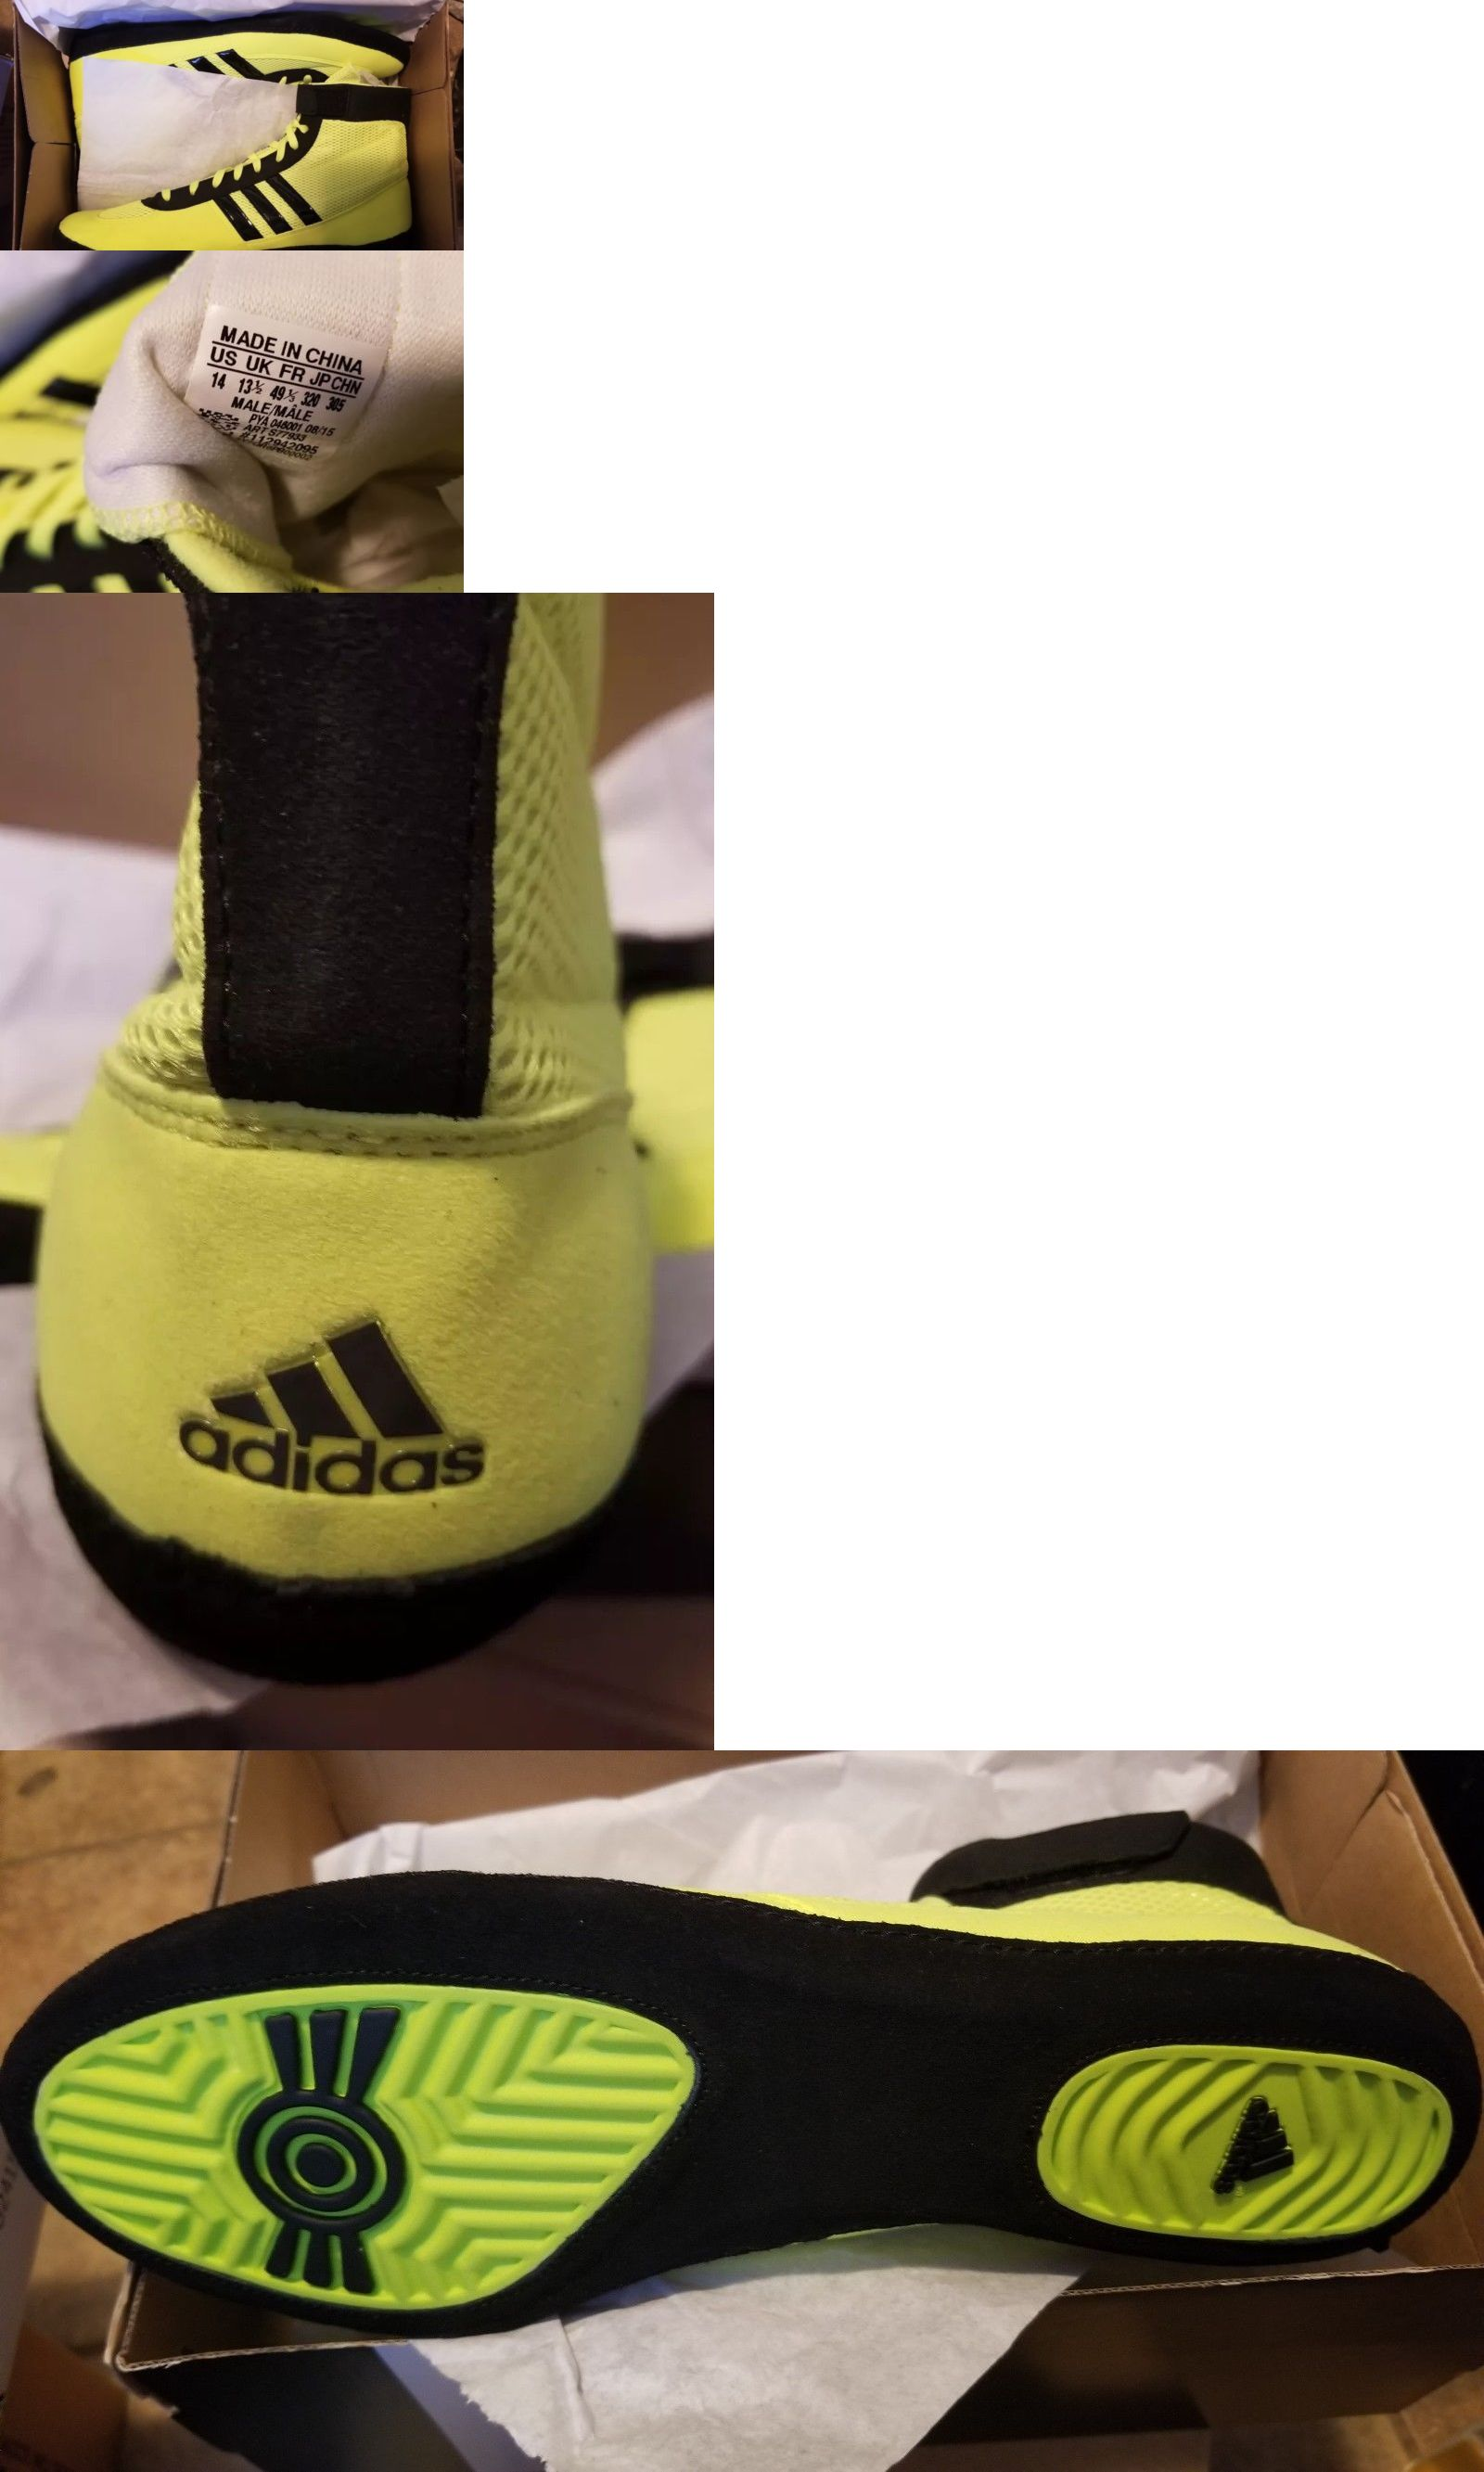 Footwear 79799  Adidas Combat Speed 4 Wrestling Shoes S77933 Solar Yellow  Black Size 14 New -  BUY IT NOW ONLY   29 on  eBay  footwear  adidas  combat  ... cb3a13e9b